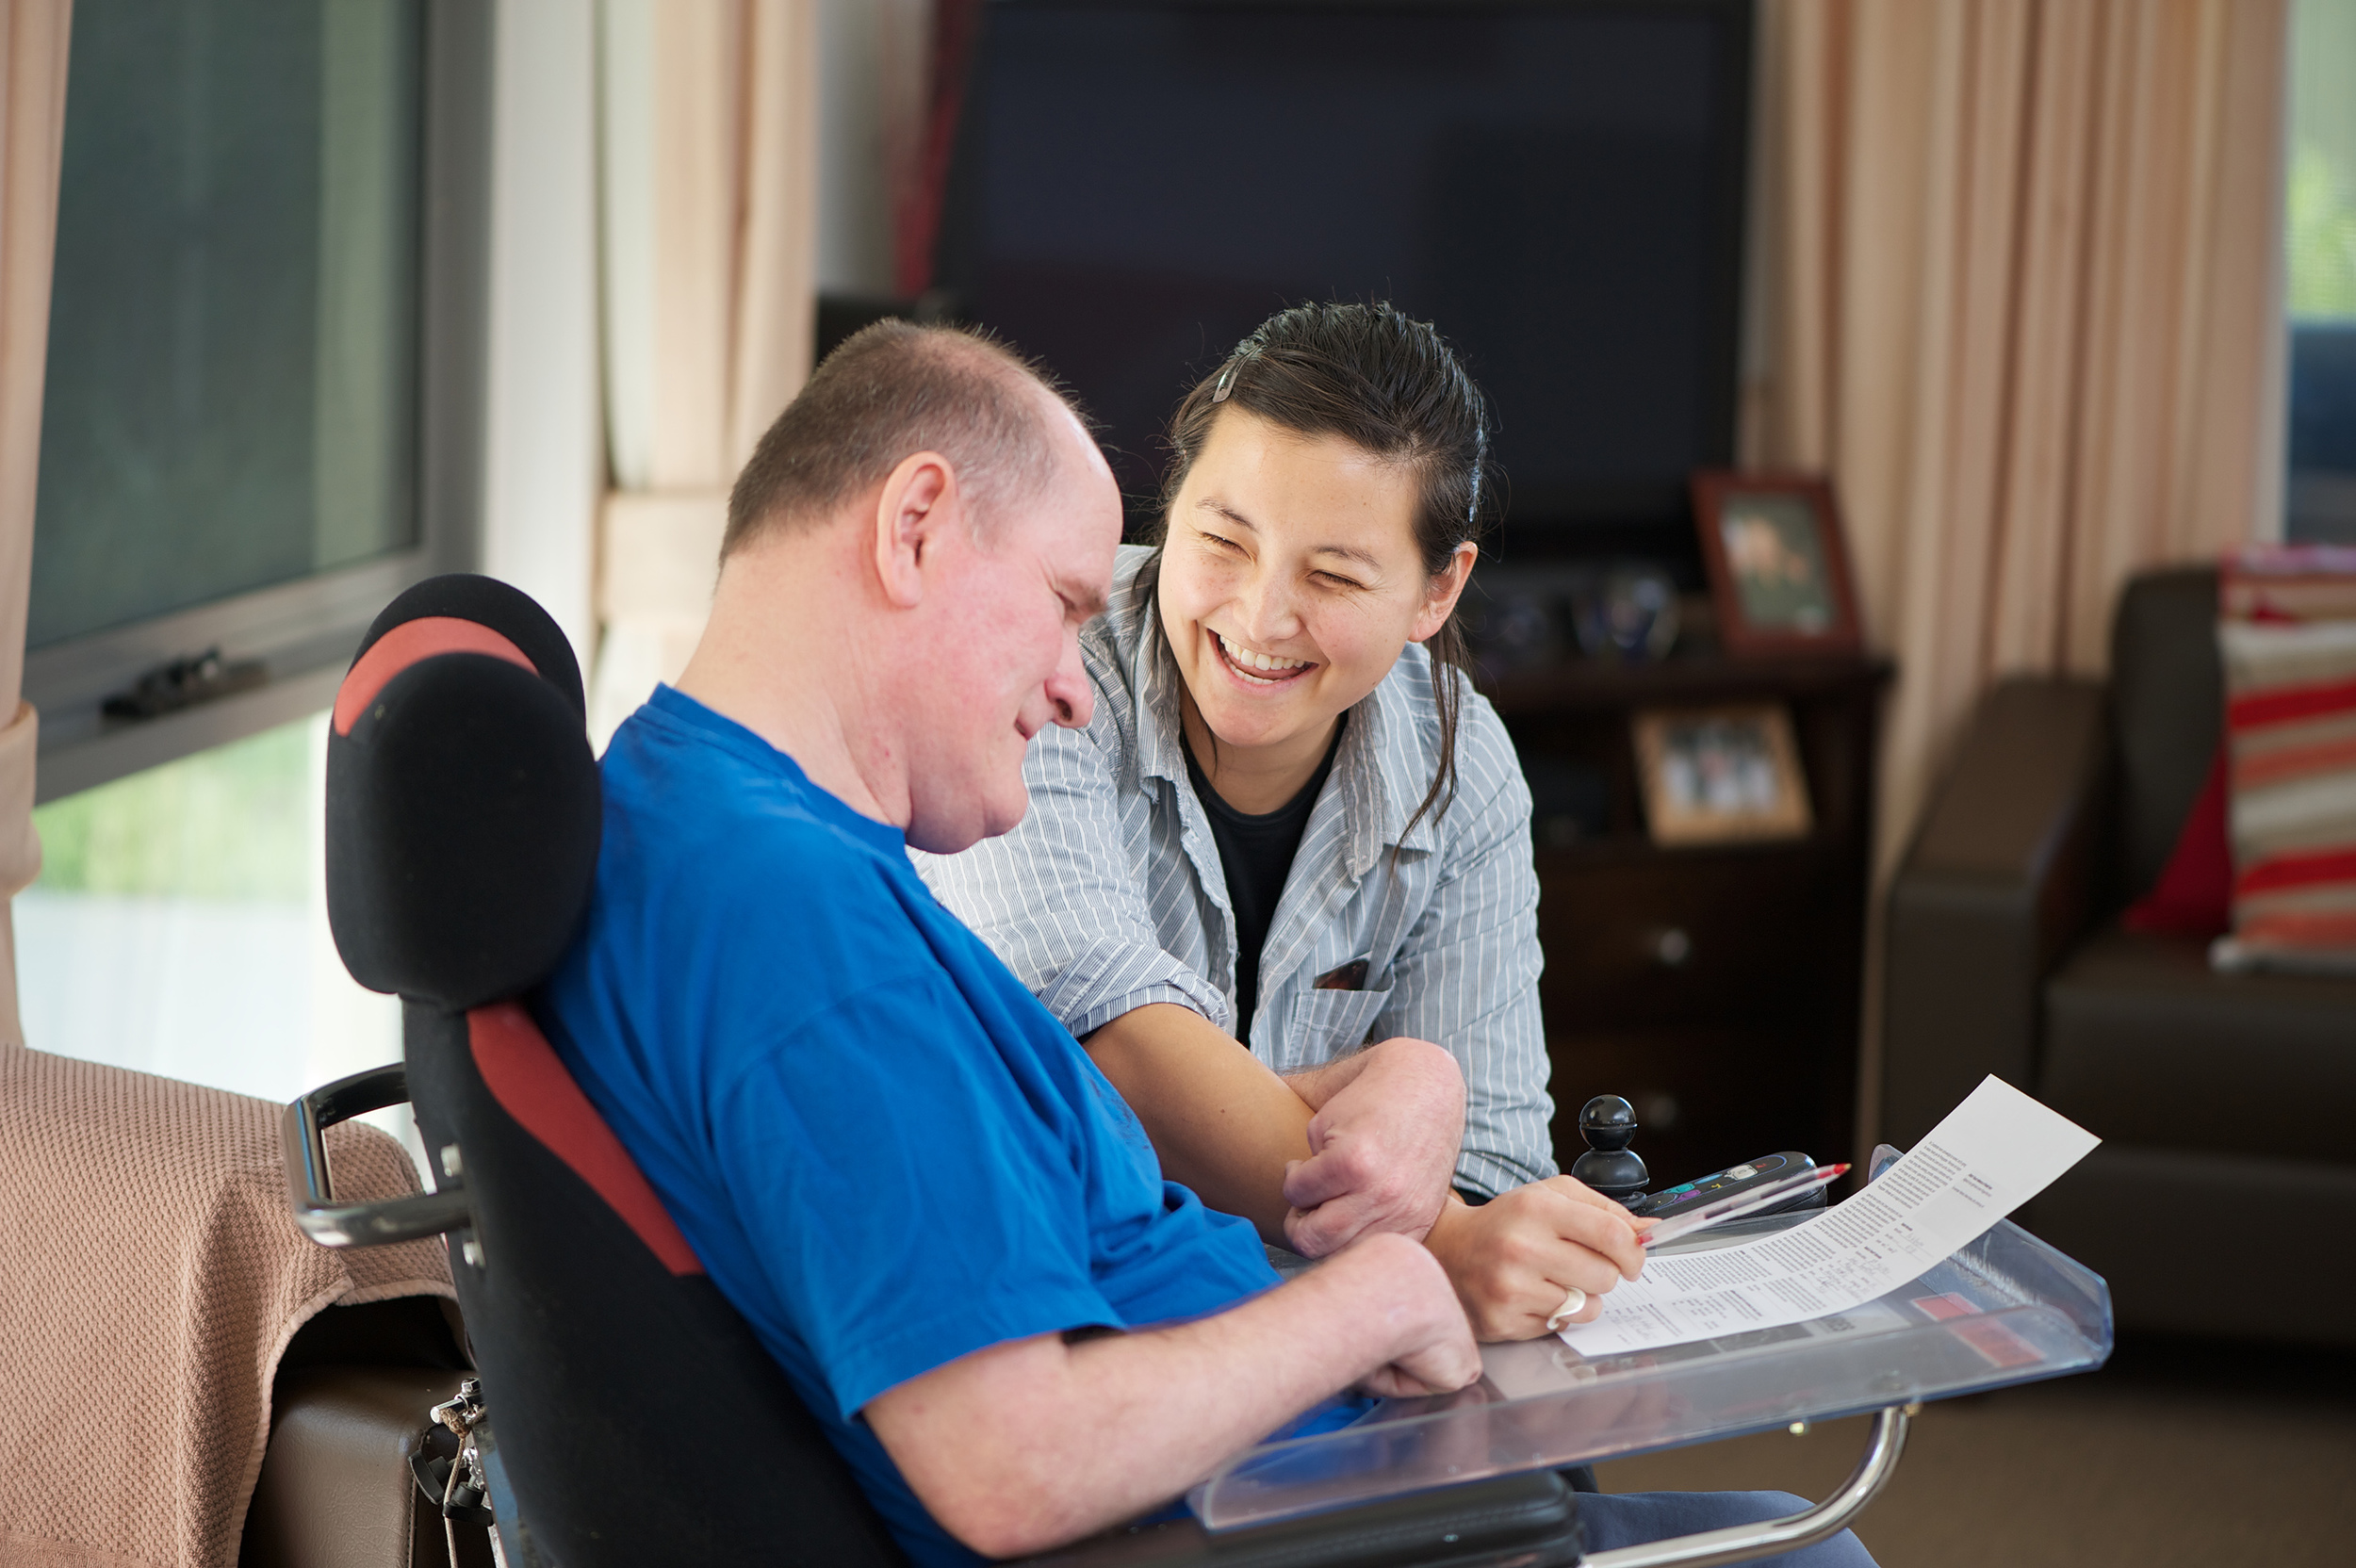 staff member smiling with a man in an electic wheelchair.jpg